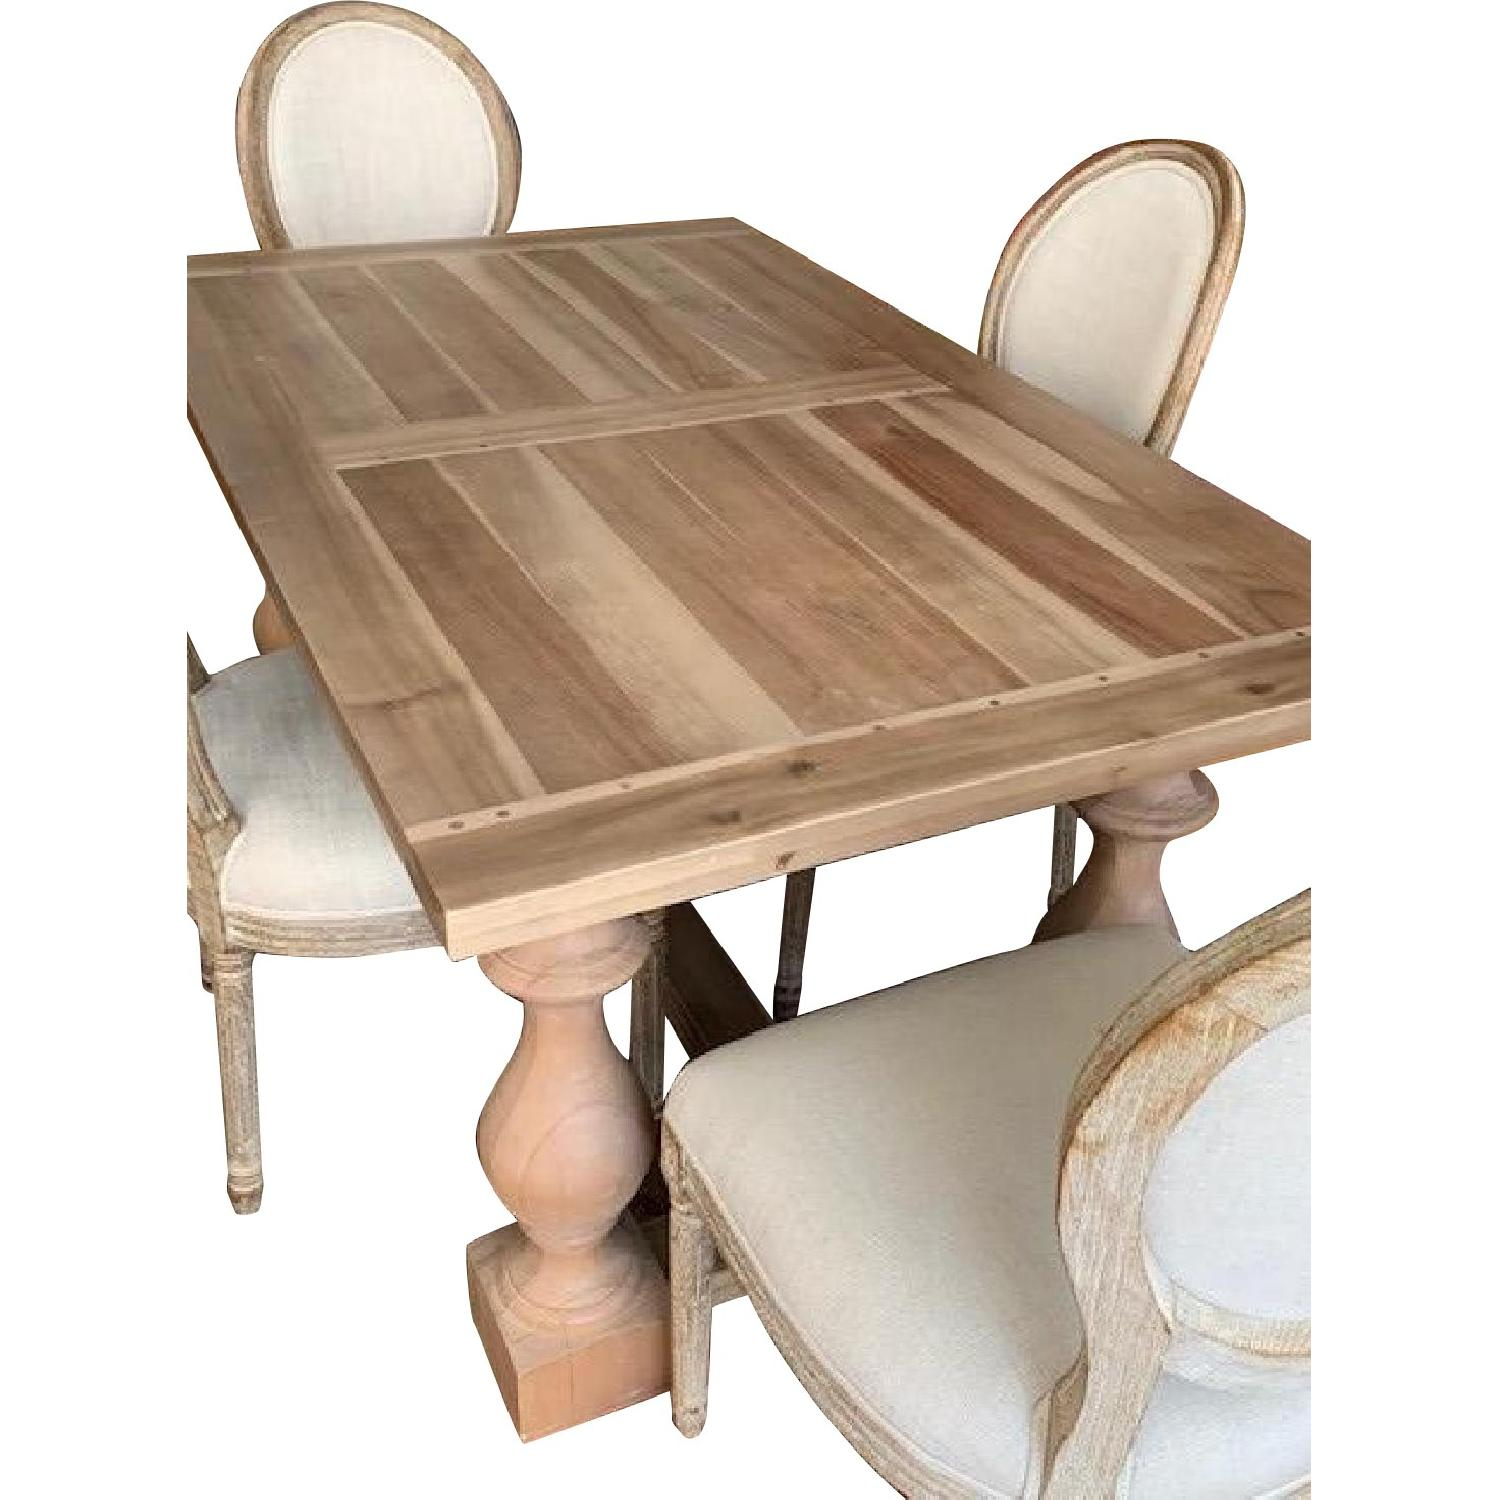 Restoration Hardware 5-Piece Dining Set